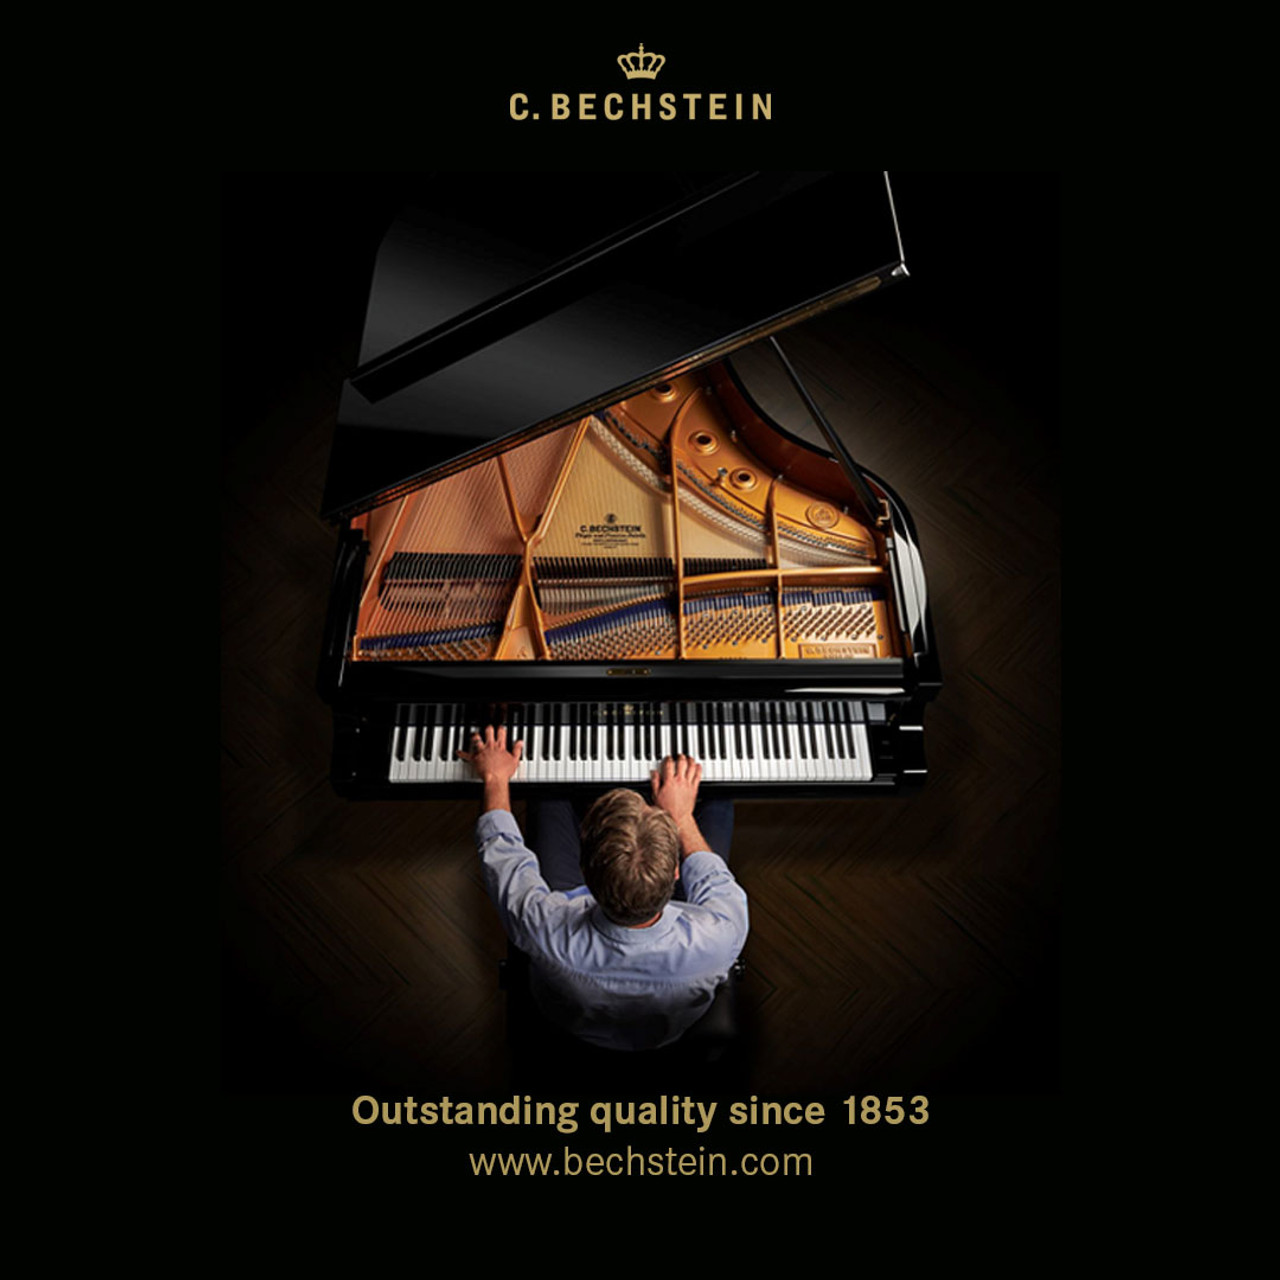 C.Bechstein A190-EP grand piano